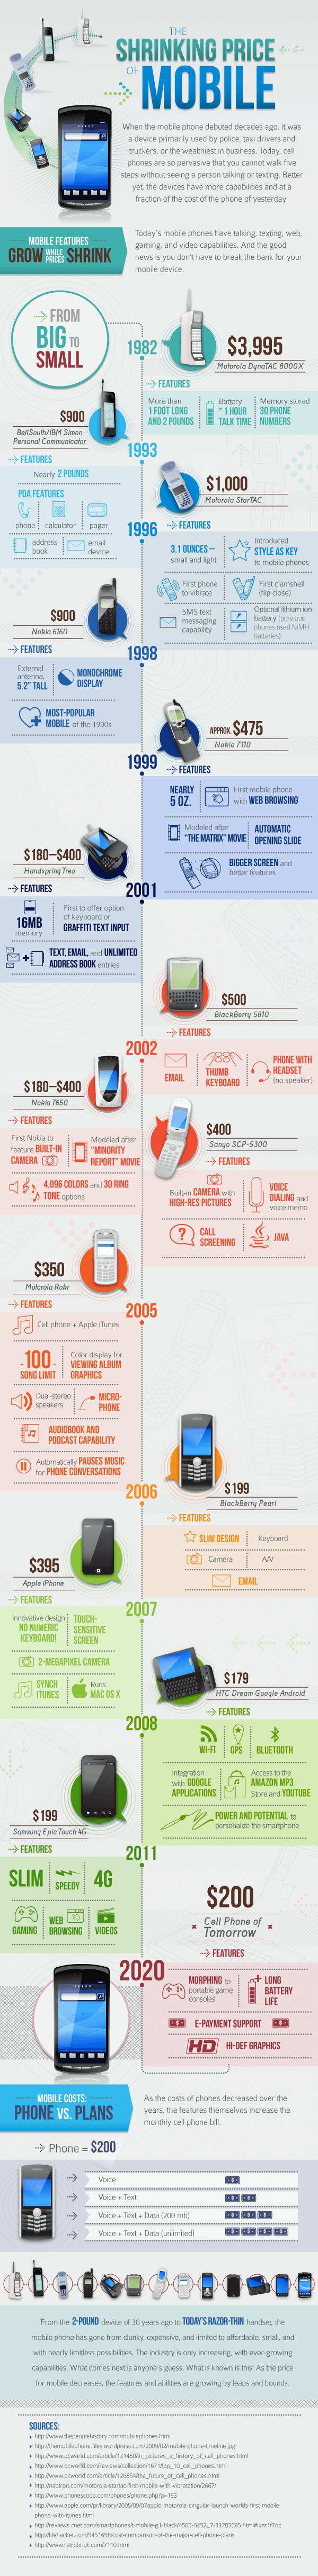 The Shrinking Cost of Mobile Phone Technology